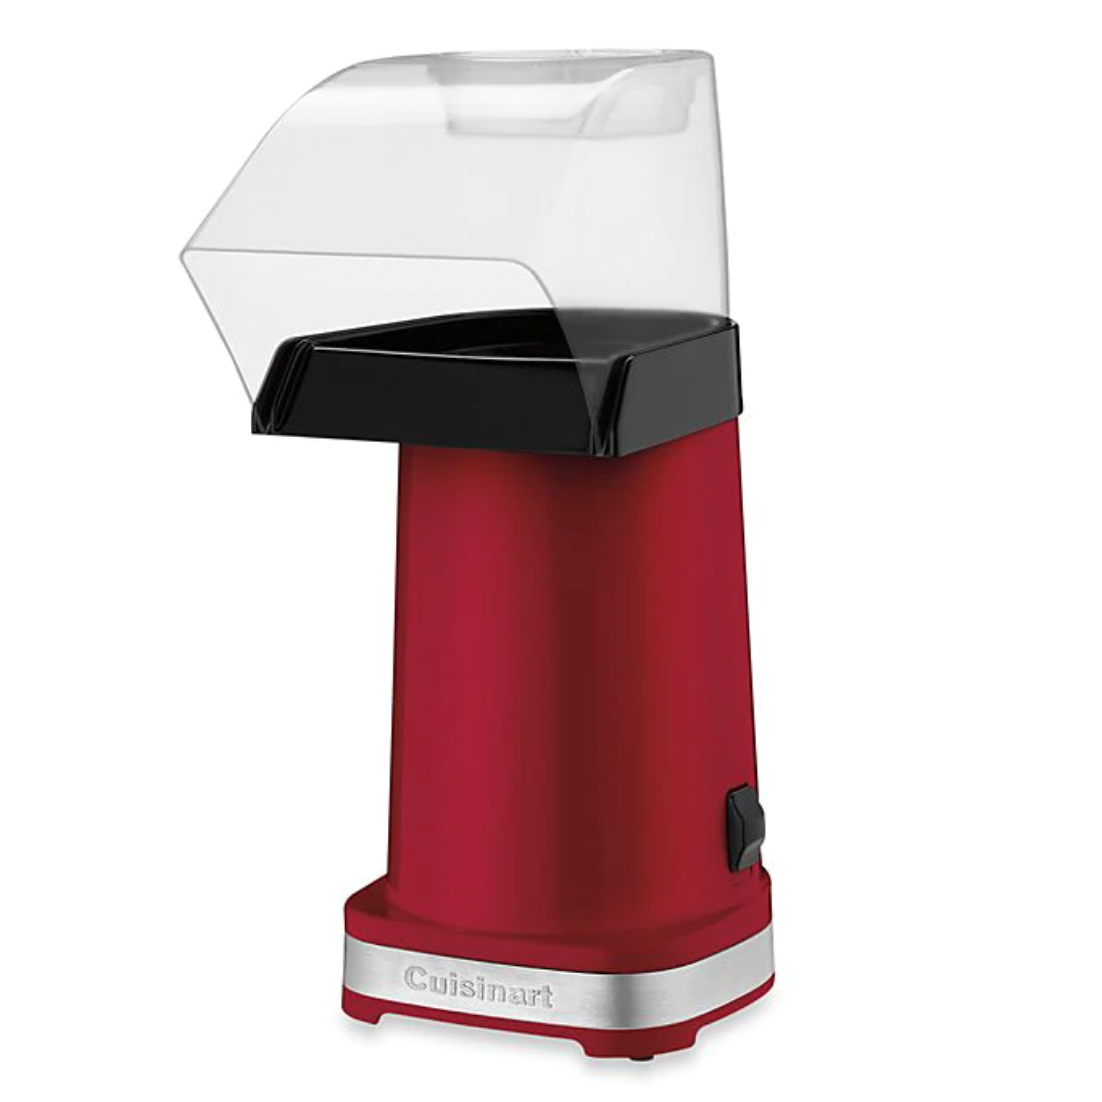 Cuisinart EasyPop Hot Air Popcorn Maker in Red with a white background